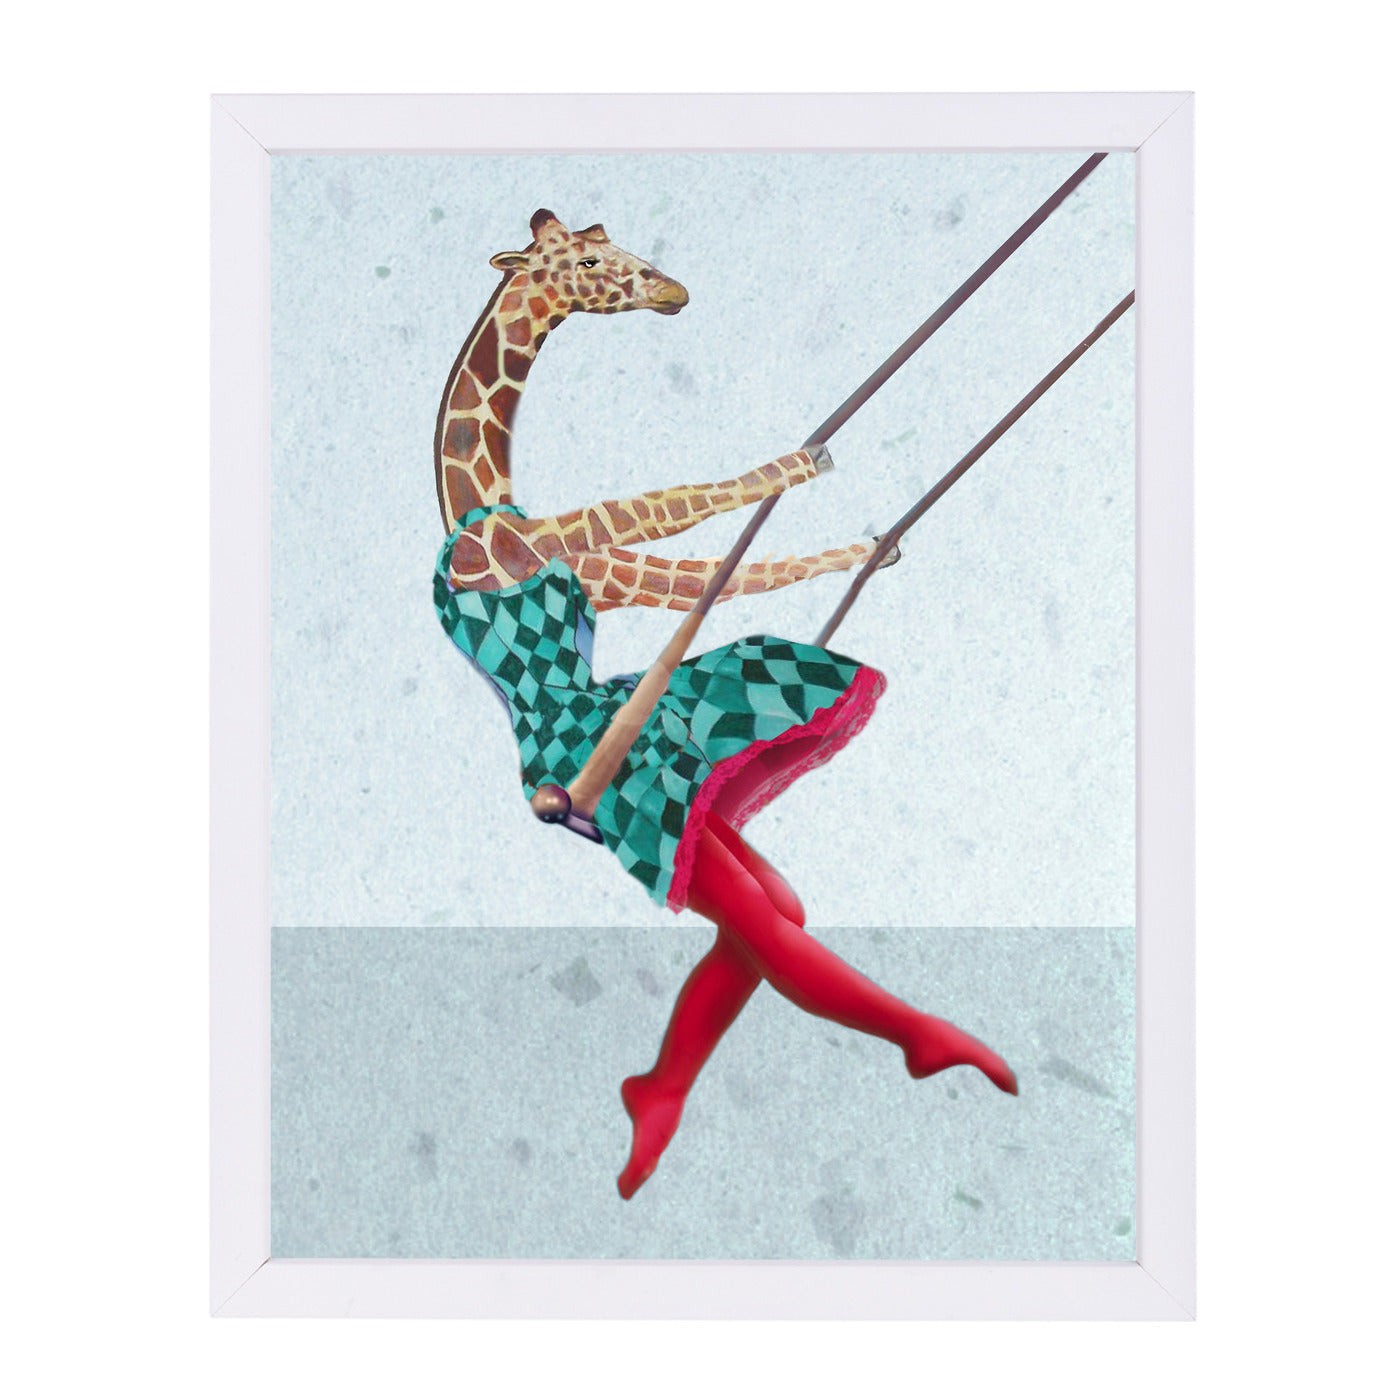 "Giraffe On A Swing By Coco De Paris - White Framed Print, Wall Art, Coco de Paris, 8"" x 10"""